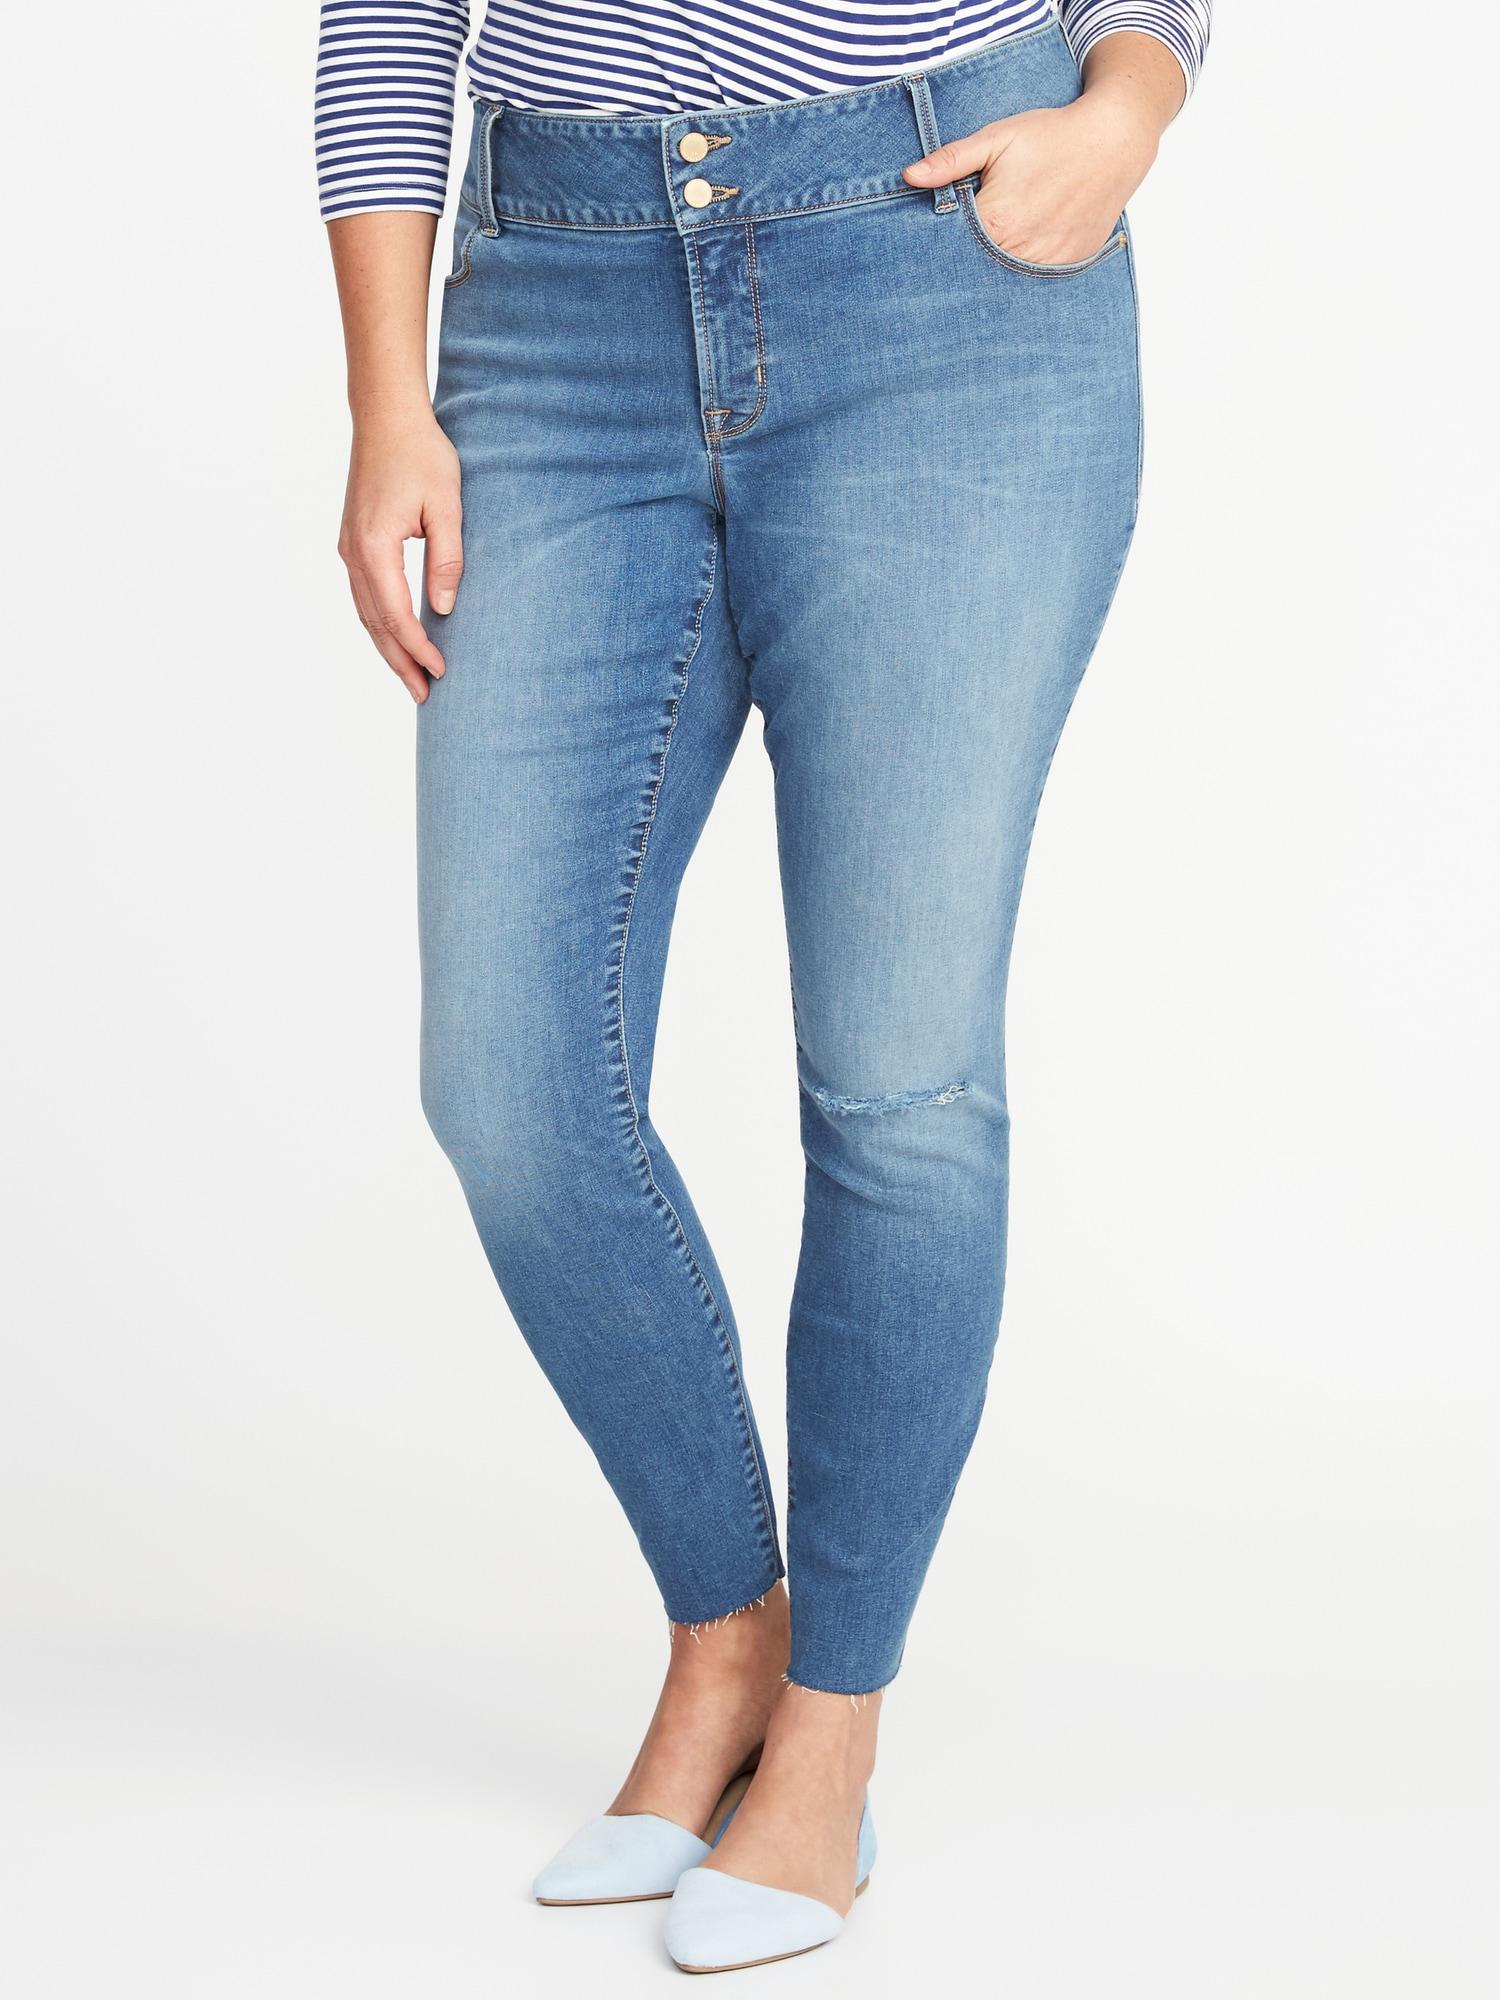 d983fa1e5f19 Old Navy. Women s Blue Secret-slim Pockets Plus-size Built-in Sculpt High-rise  Rockstar Jeans